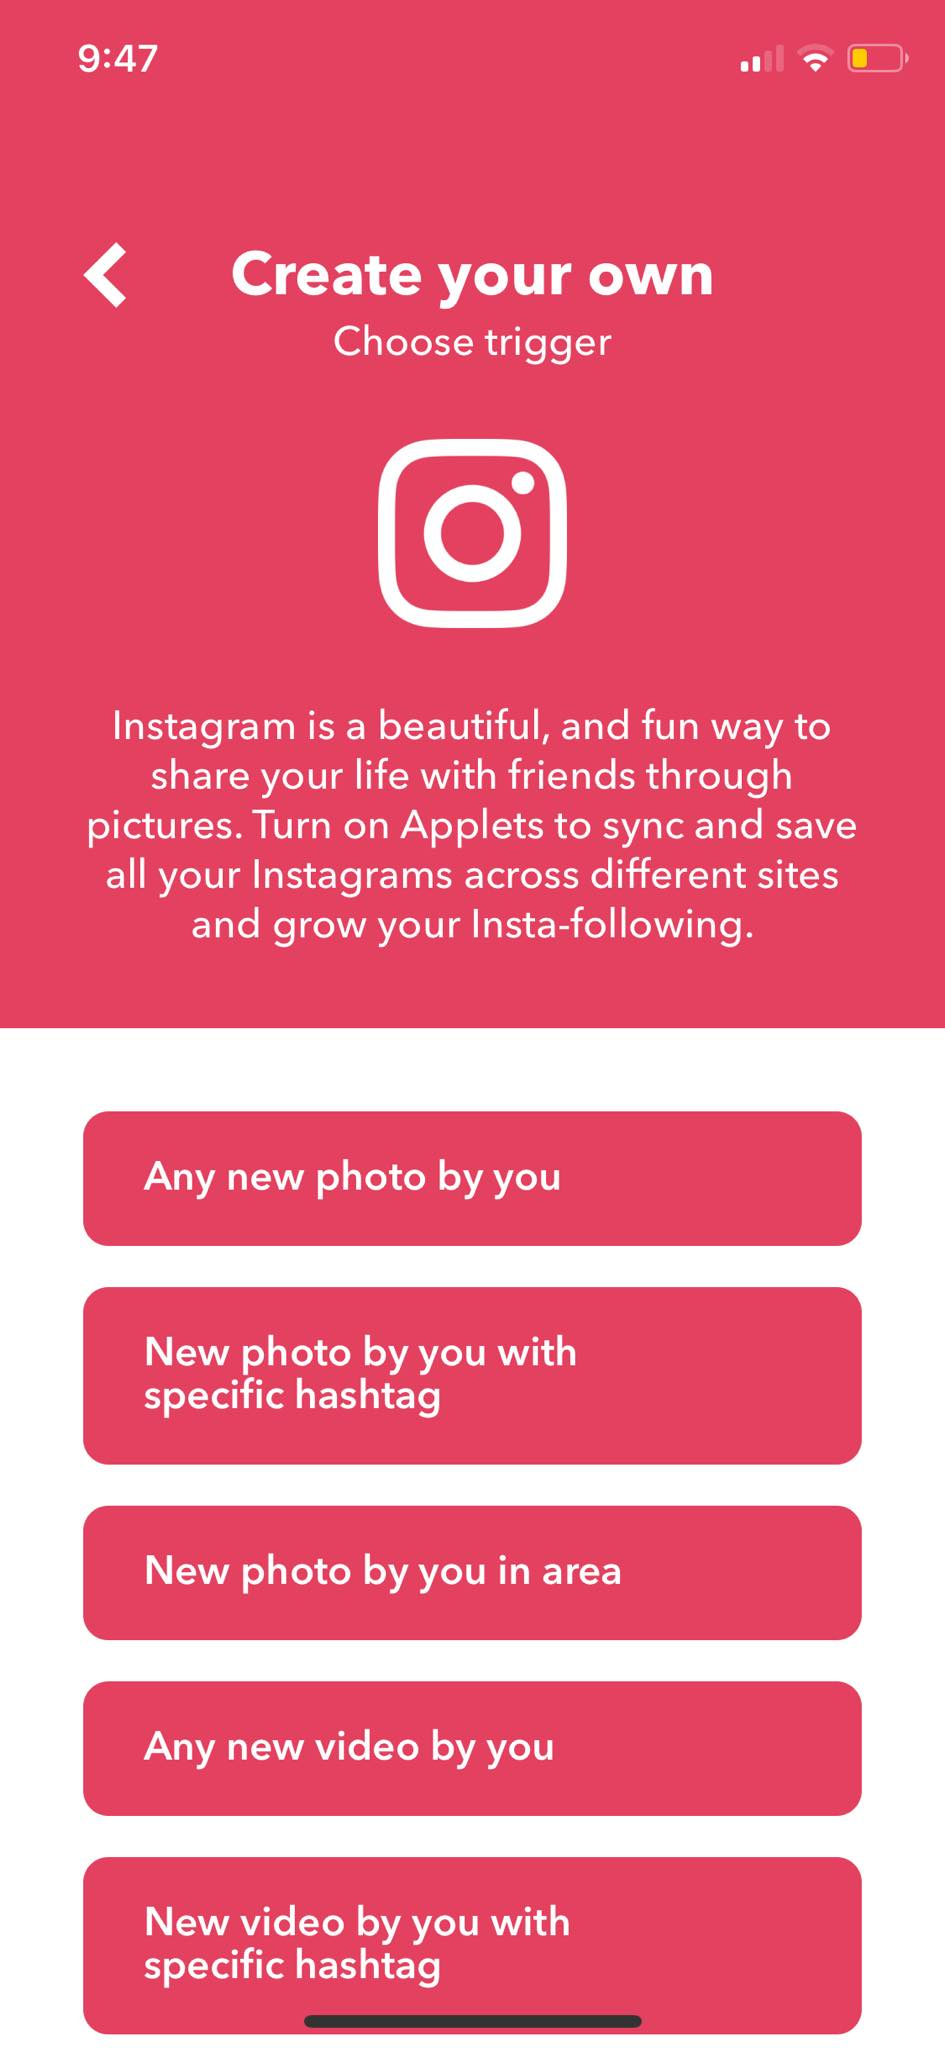 Instagram Trigger on iOS by IFTTT from UIGarage